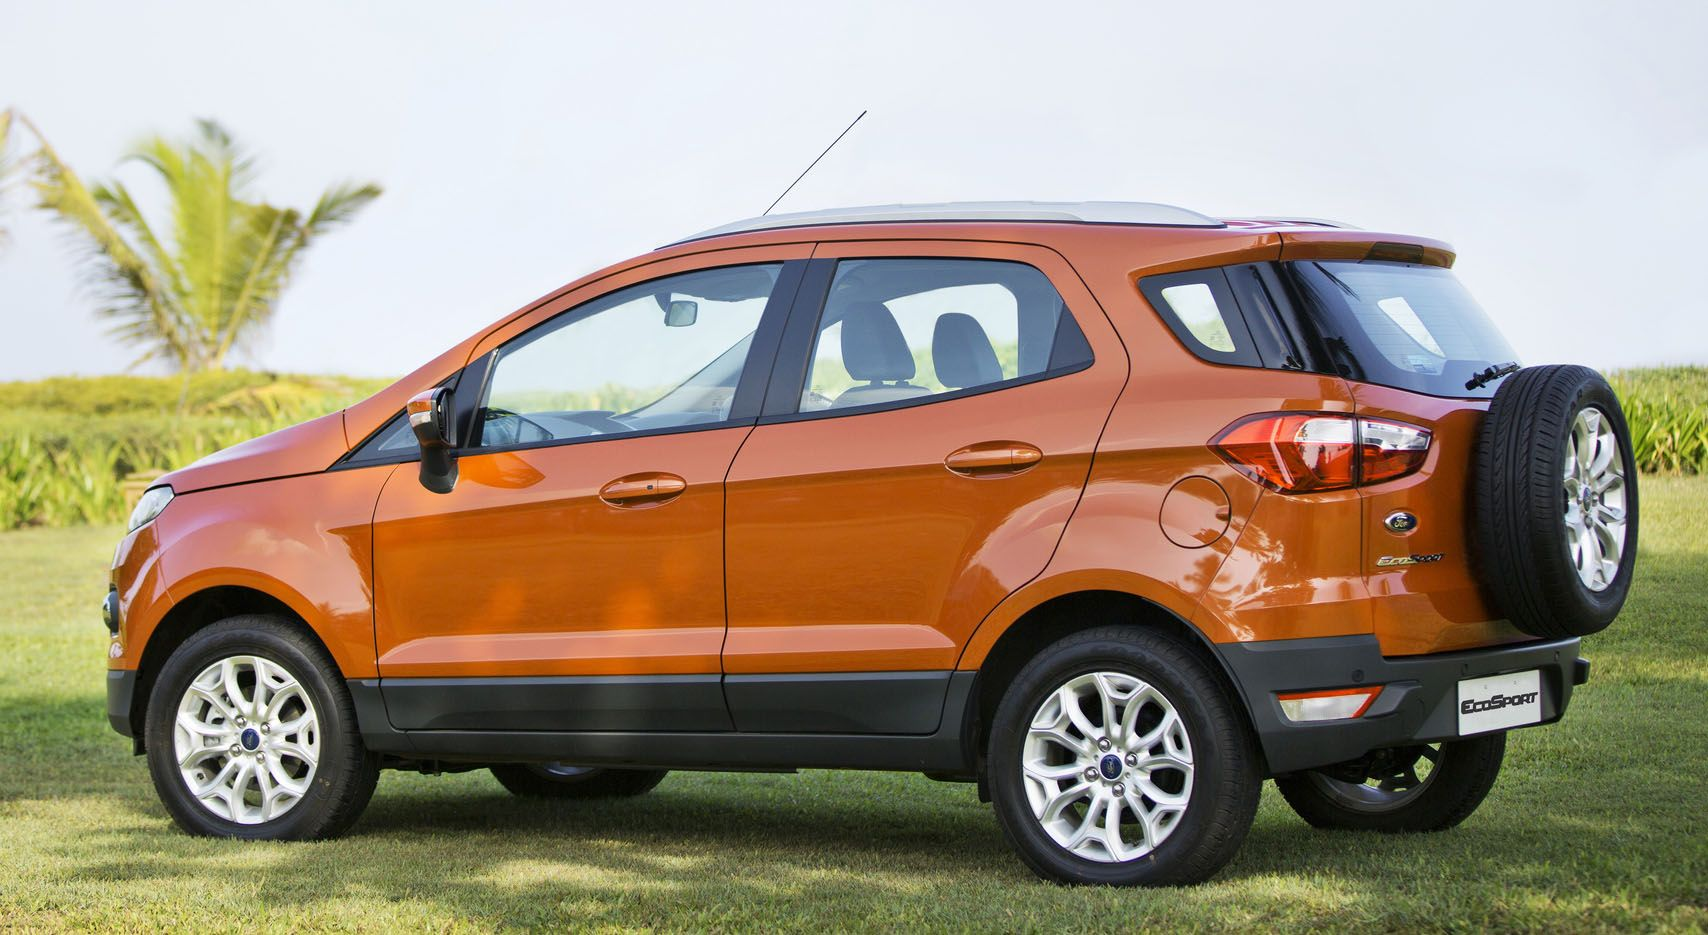 Find All New Ford Cars Listings In India Try QuikrCars To Great Deals On Ecosport Car With Road Price Images Specs Feature Details